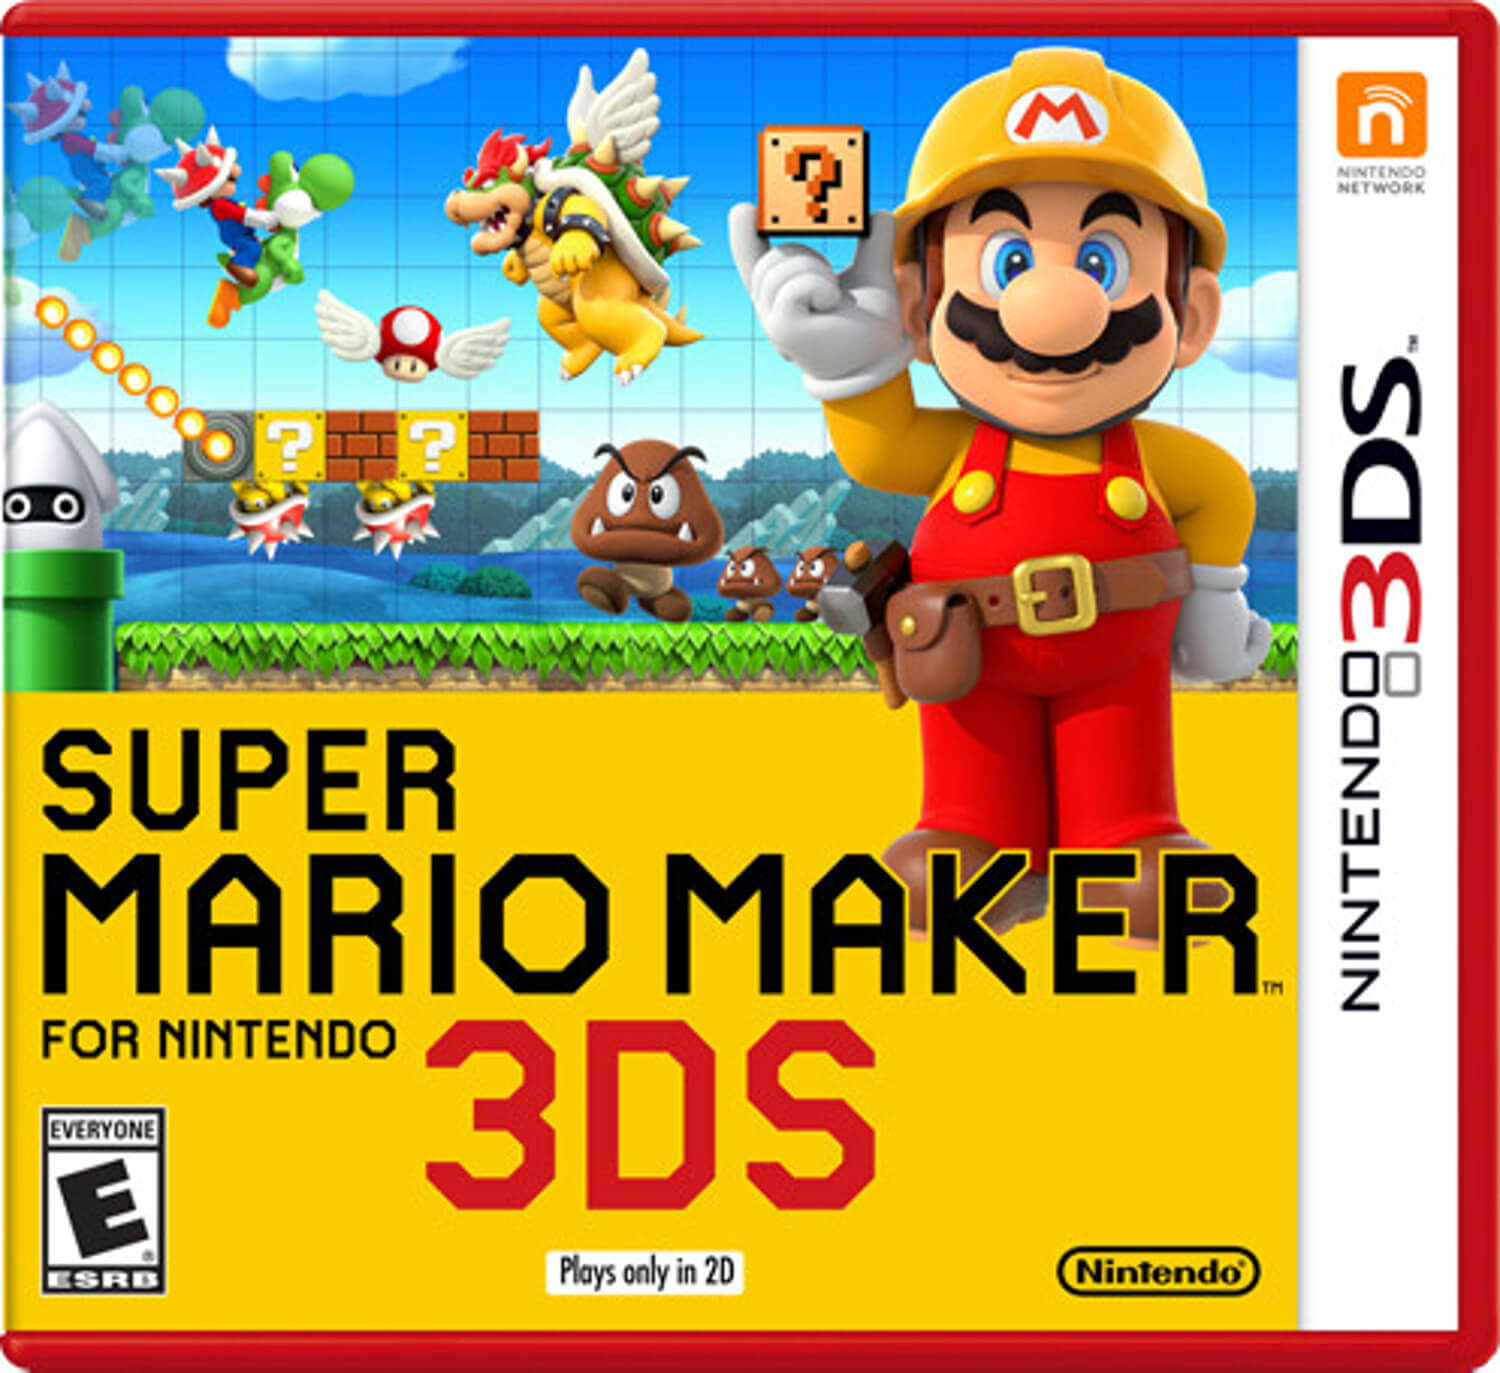 Capa do Super Mario Maker for Nintendo 3DS